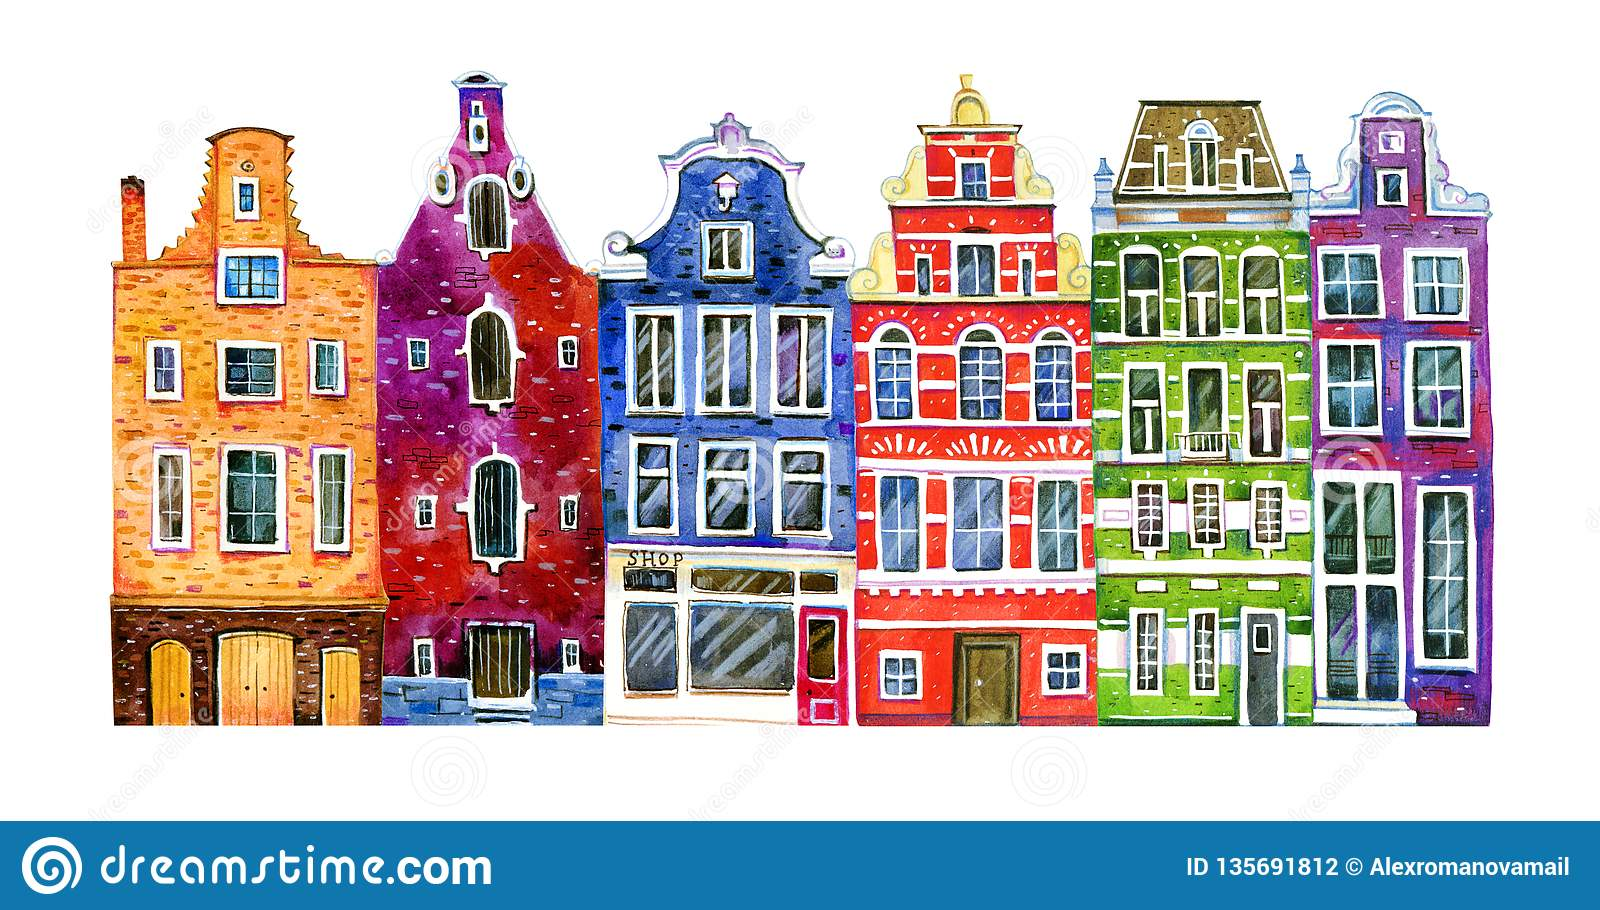 Watercolor old stone europe houses. Amsterdam buildings. Hand drawn cartoon illustration